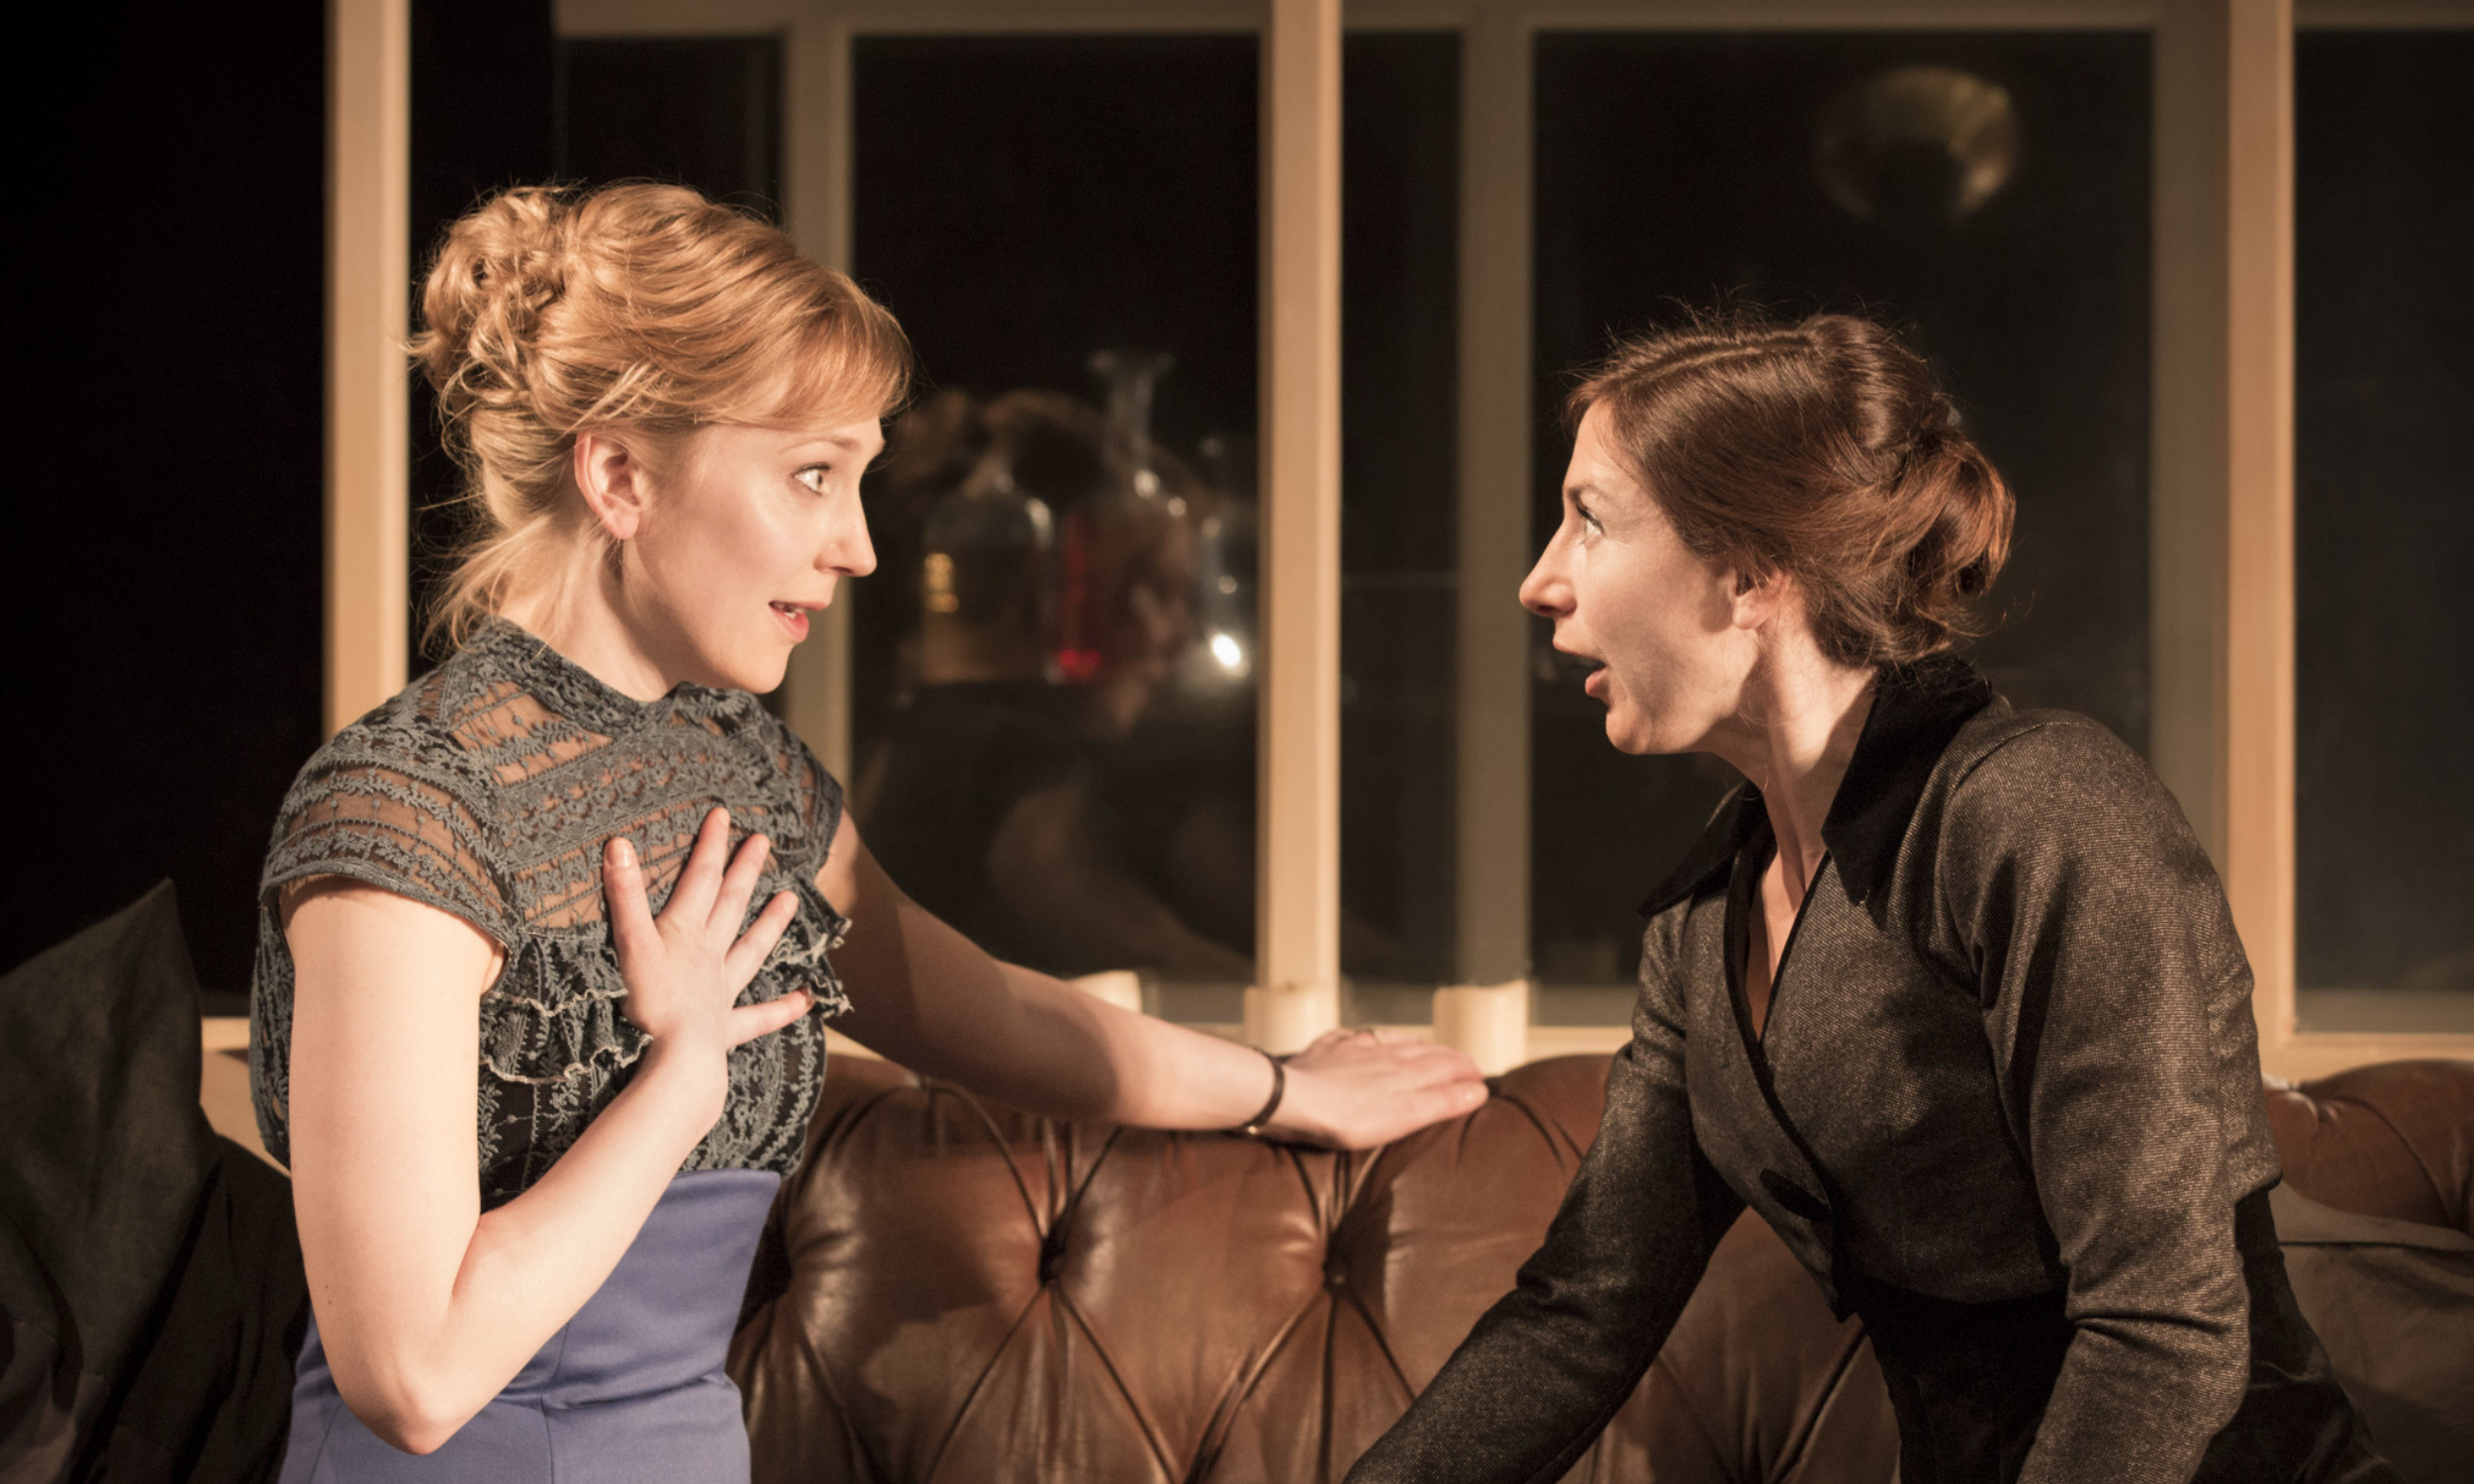 Hattie Morahan (Nora) and Susannah Wise (Kristine Linde) look at each other in shock in the Young Vic's A Doll's House © Johan Persson